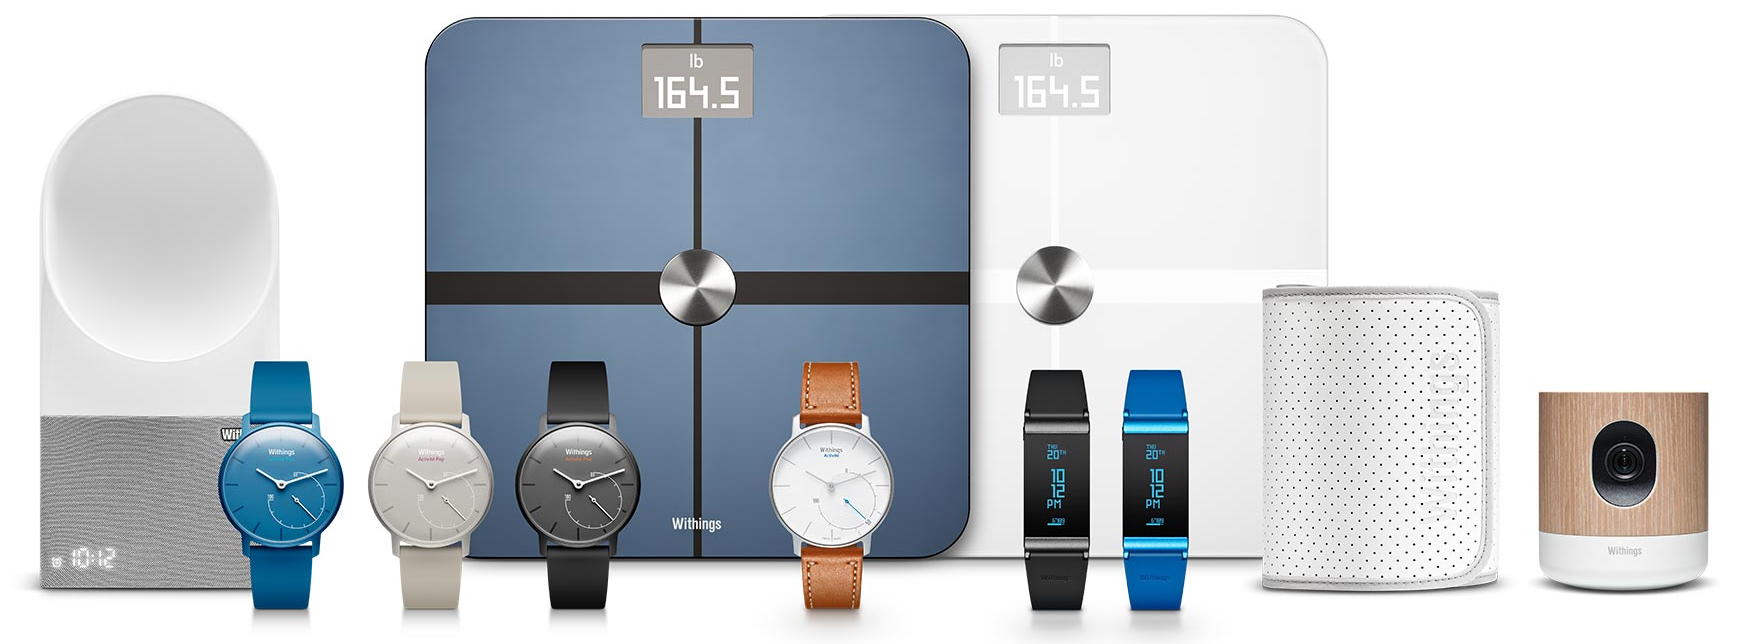 withings-assortiment-001